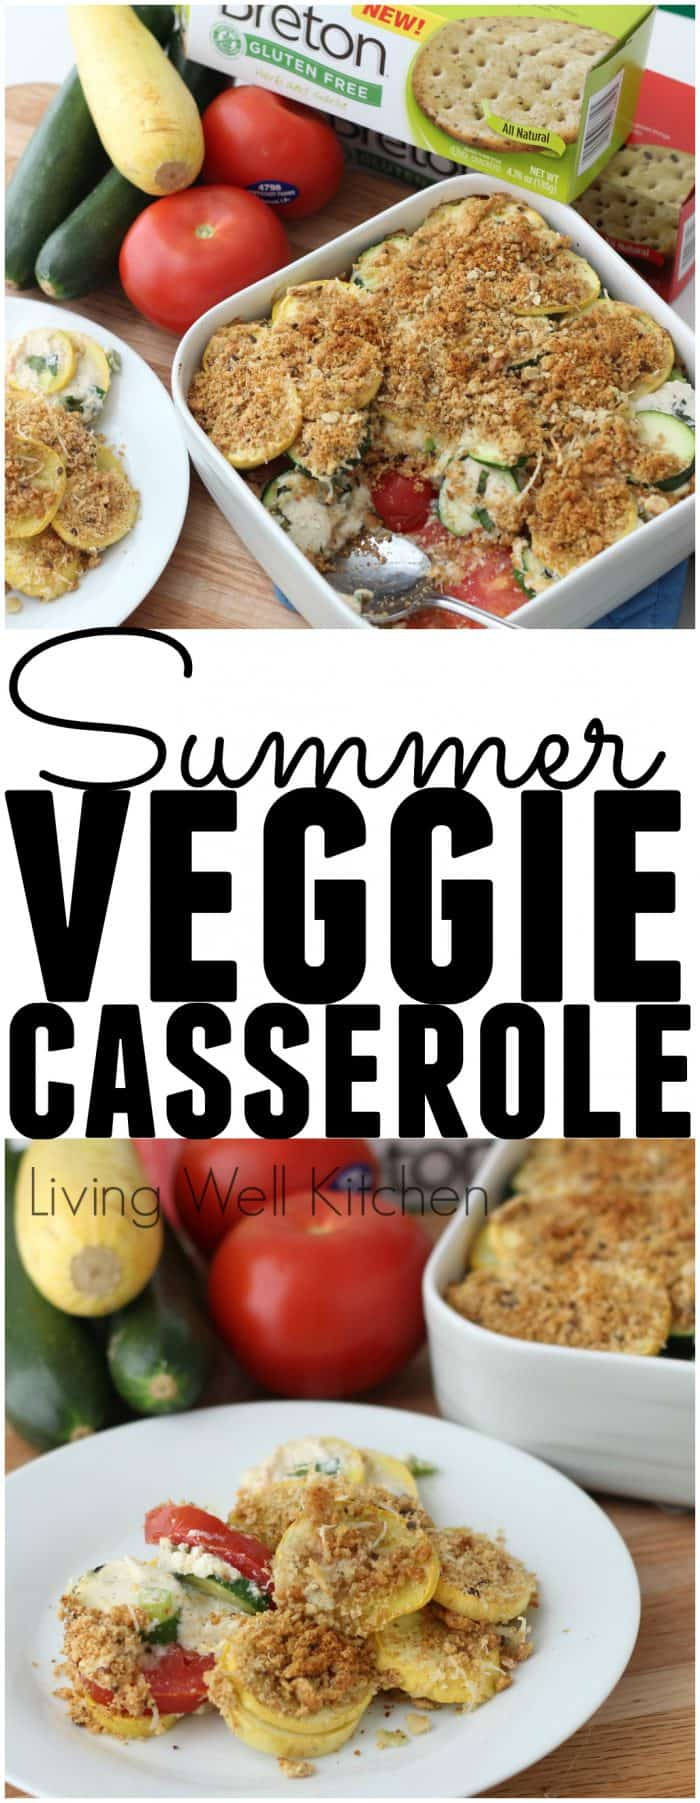 Summer Veggie Casserole from @memeinge is a delicious way to use all those colorful summer vegetables popping up in the produce section, and everyone can enjoy because the topping is gluten-free